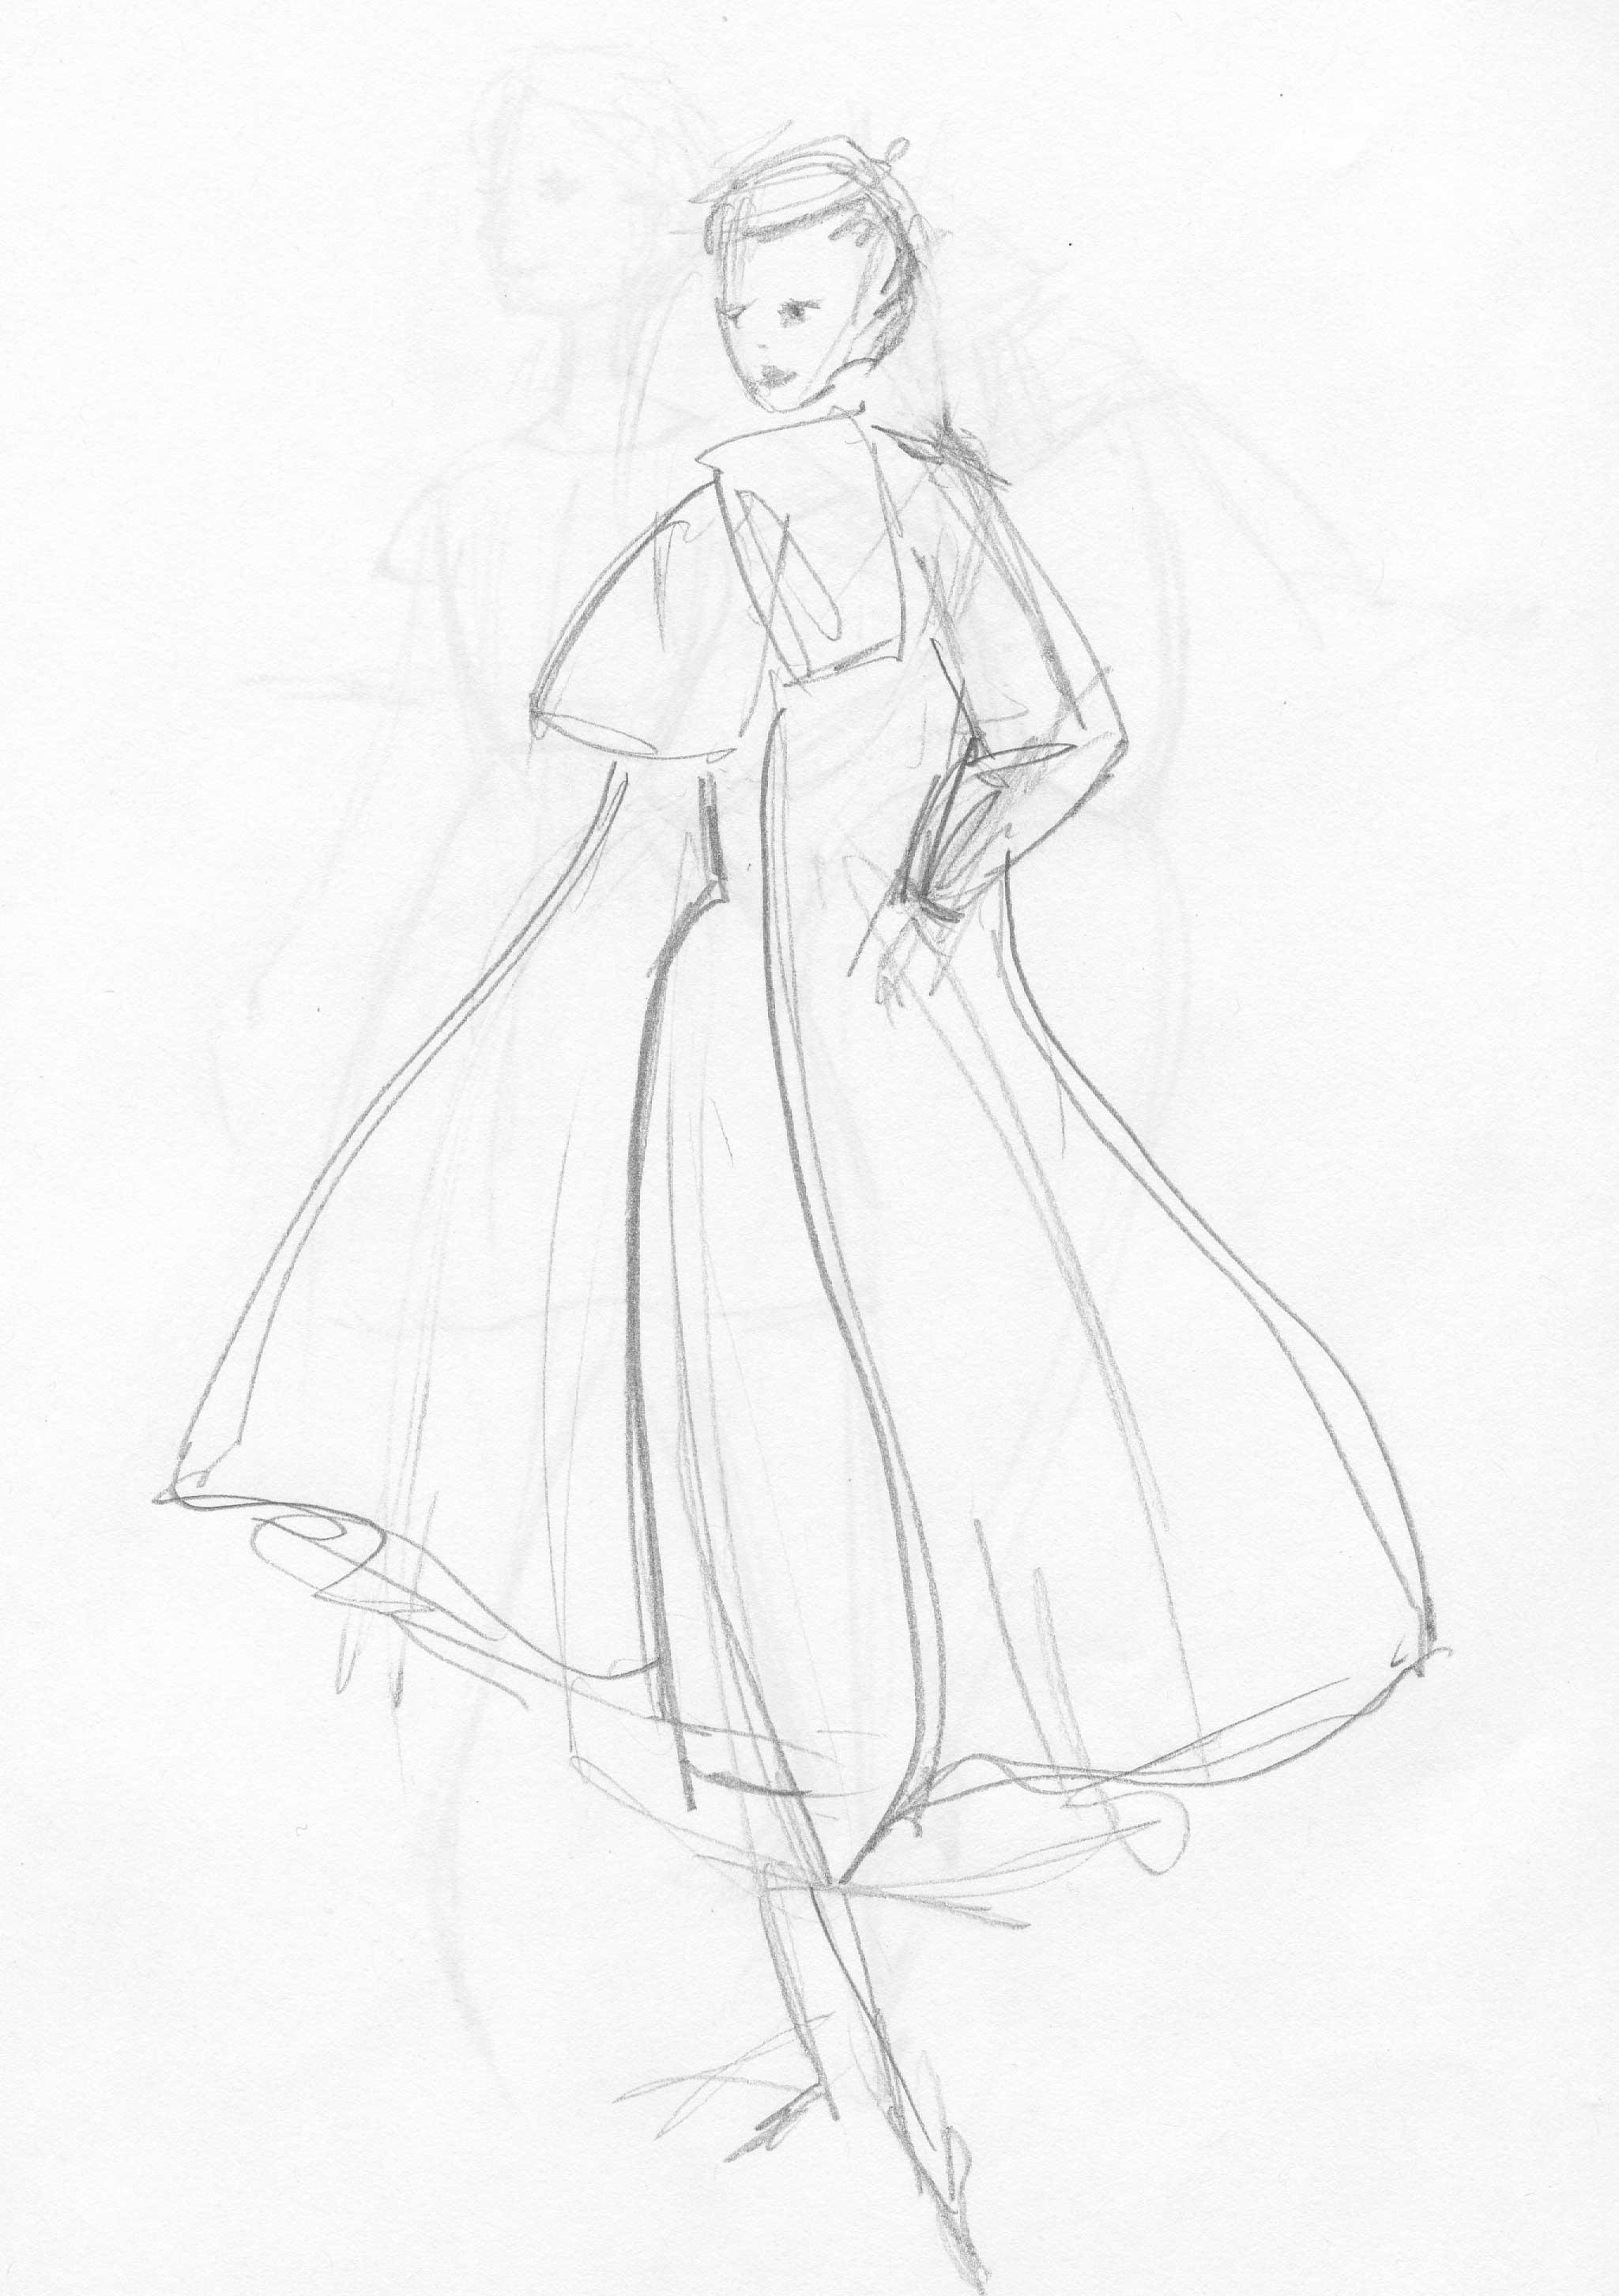 *(SKETCHES)* a walk down memory lane - image 18 - student project